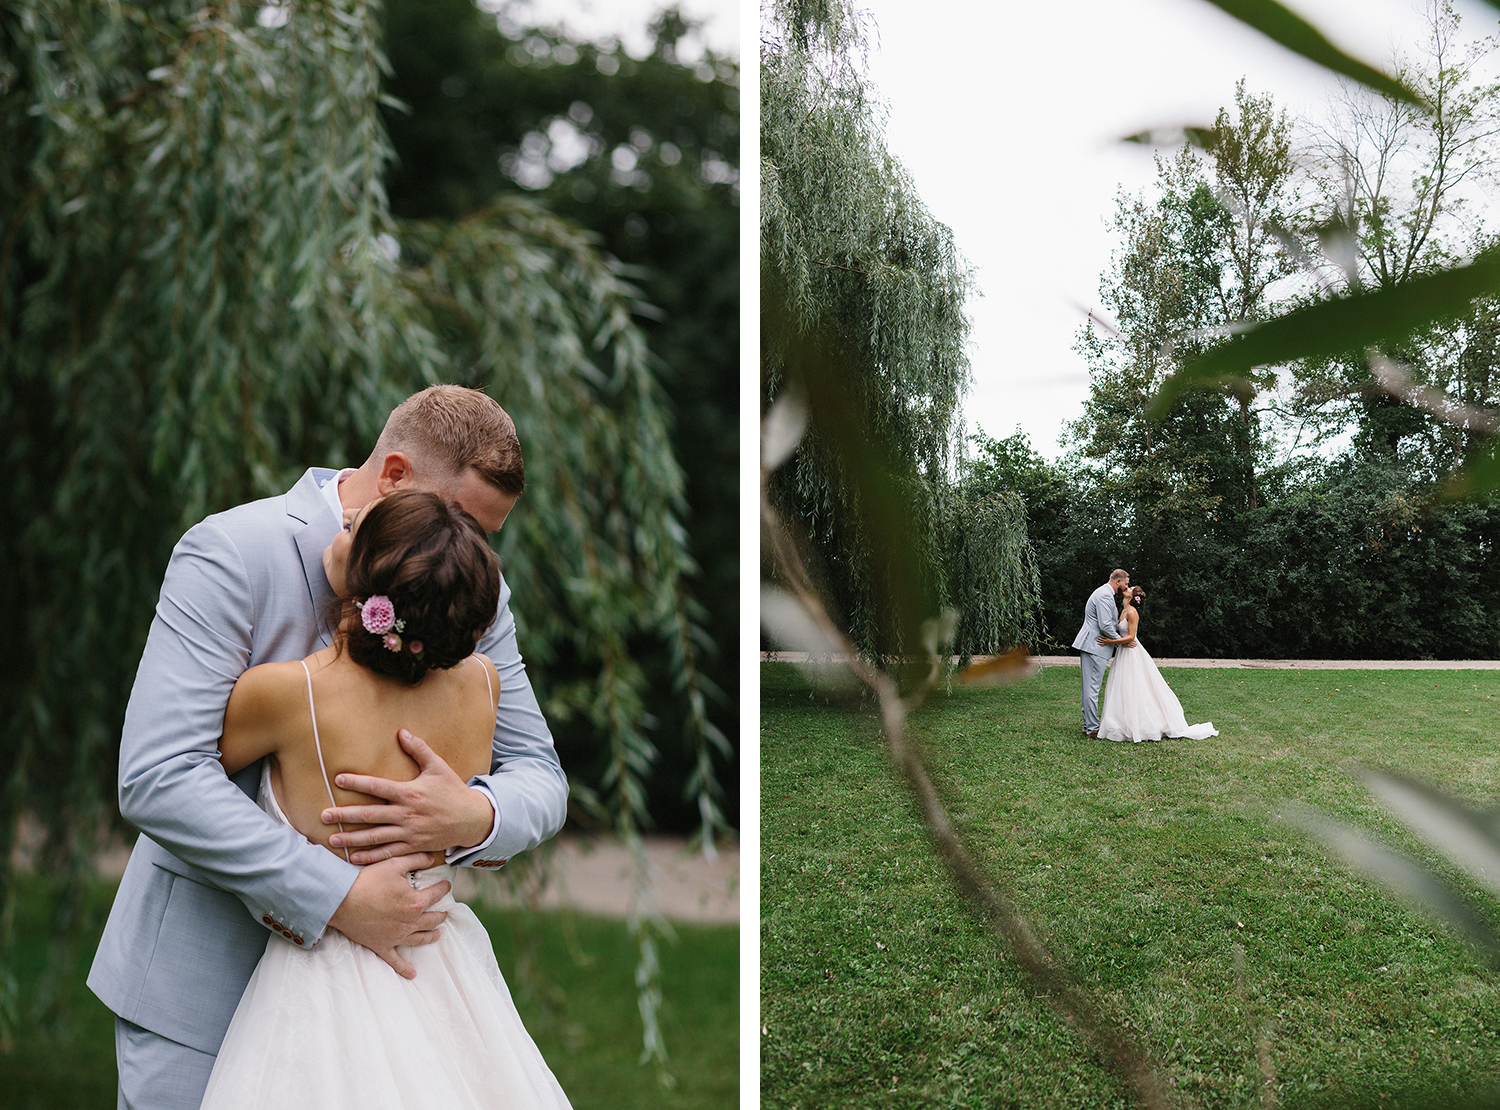 11-Best-Toronto-Wedding-Photographers-Photojournalistic-Wedding-Photography-in-Toronto-Ryanne-Hollies-Photography-candid-documentary-bradford-family-farm-first-look-inspiration-in-willow-trees-real-moments-reaction-emotional-hug.jpg